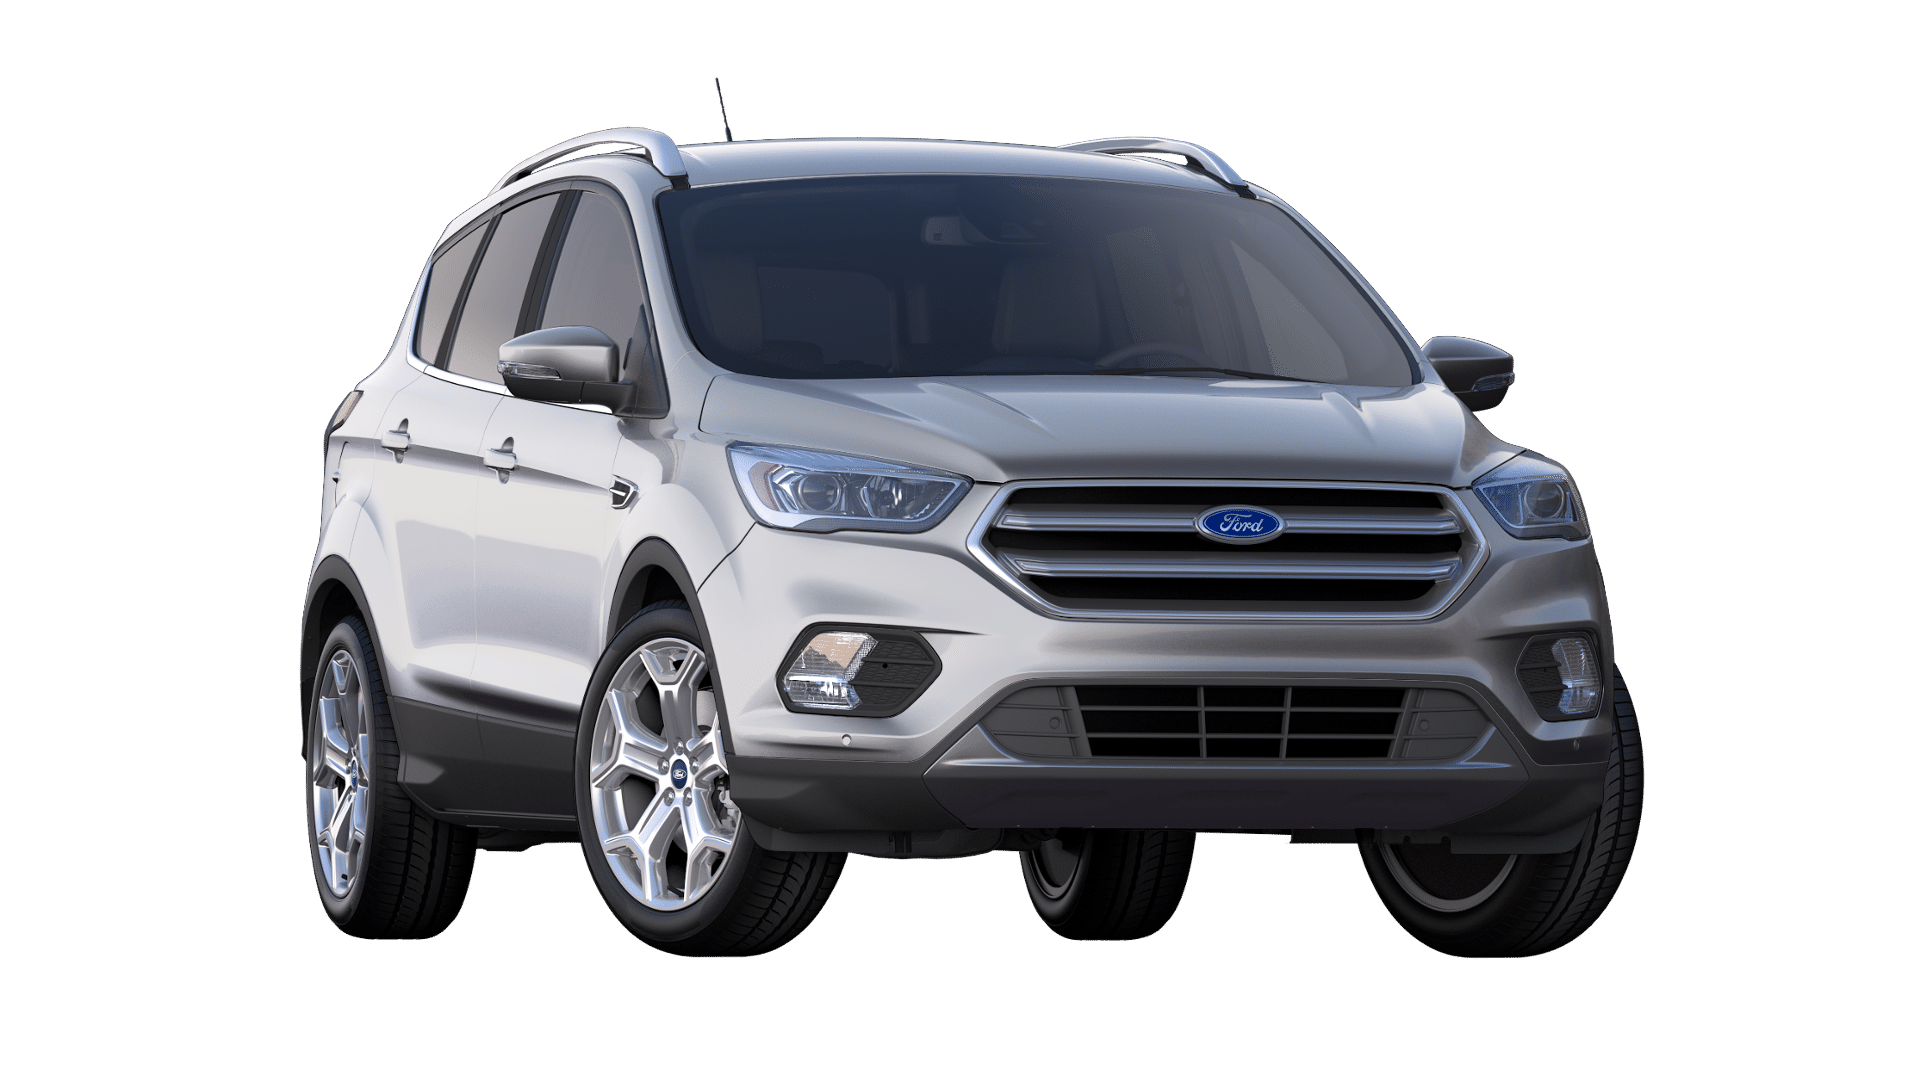 2019 Ford Escape Ingot Silver Exterior Color